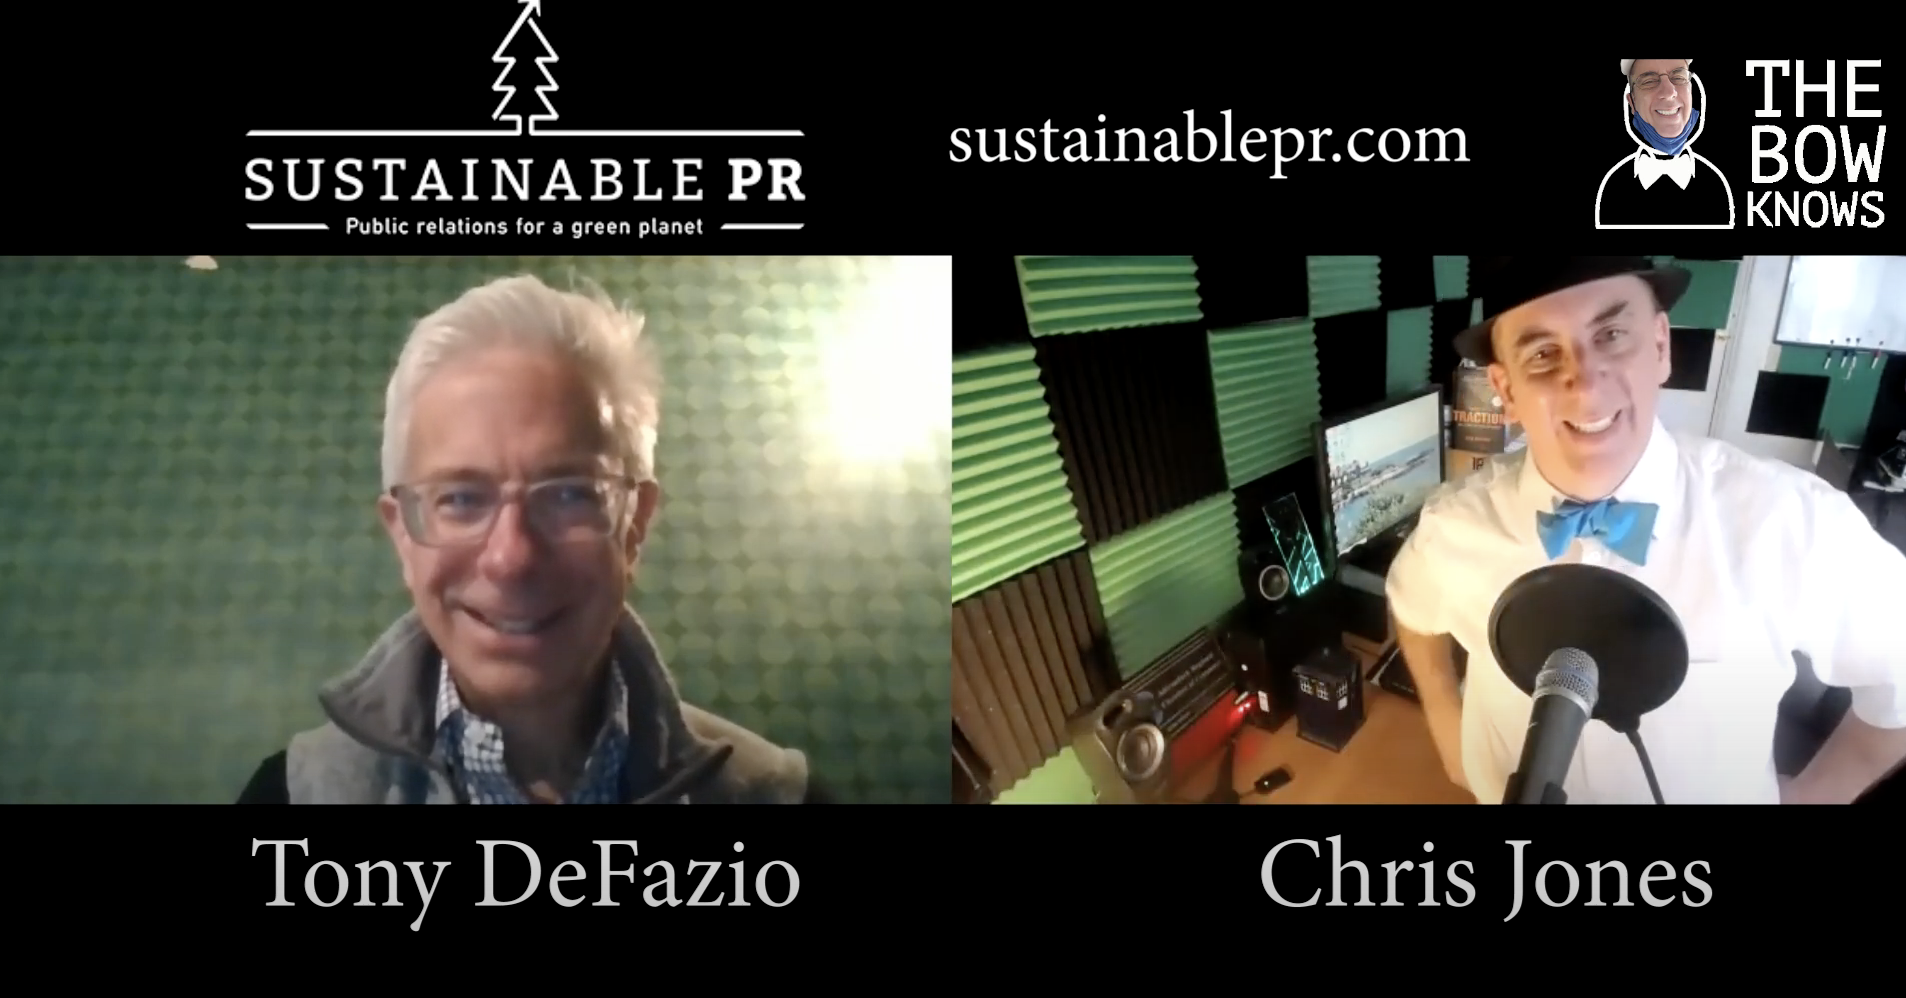 """What Is the New Green Economy? """"The Bow Knows"""" Interviews SPR Founder Tony DeFazio"""